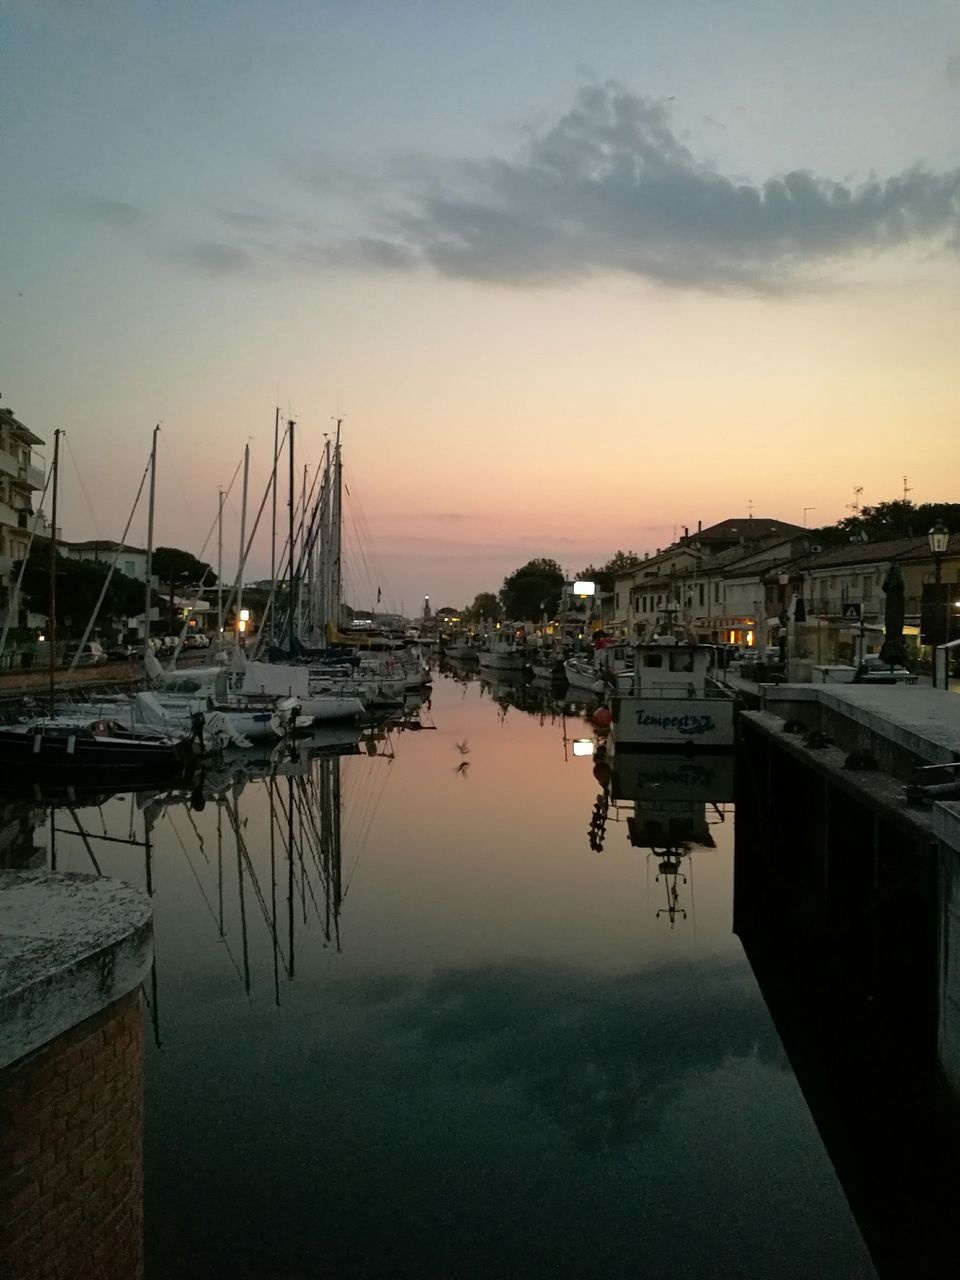 nautical vessel, water, reflection, moored, sunset, sky, transportation, mode of transport, boat, built structure, building exterior, architecture, outdoors, harbor, tranquility, nature, no people, sea, cloud - sky, tranquil scene, mast, travel destinations, beauty in nature, scenics, sailboat, yacht, day